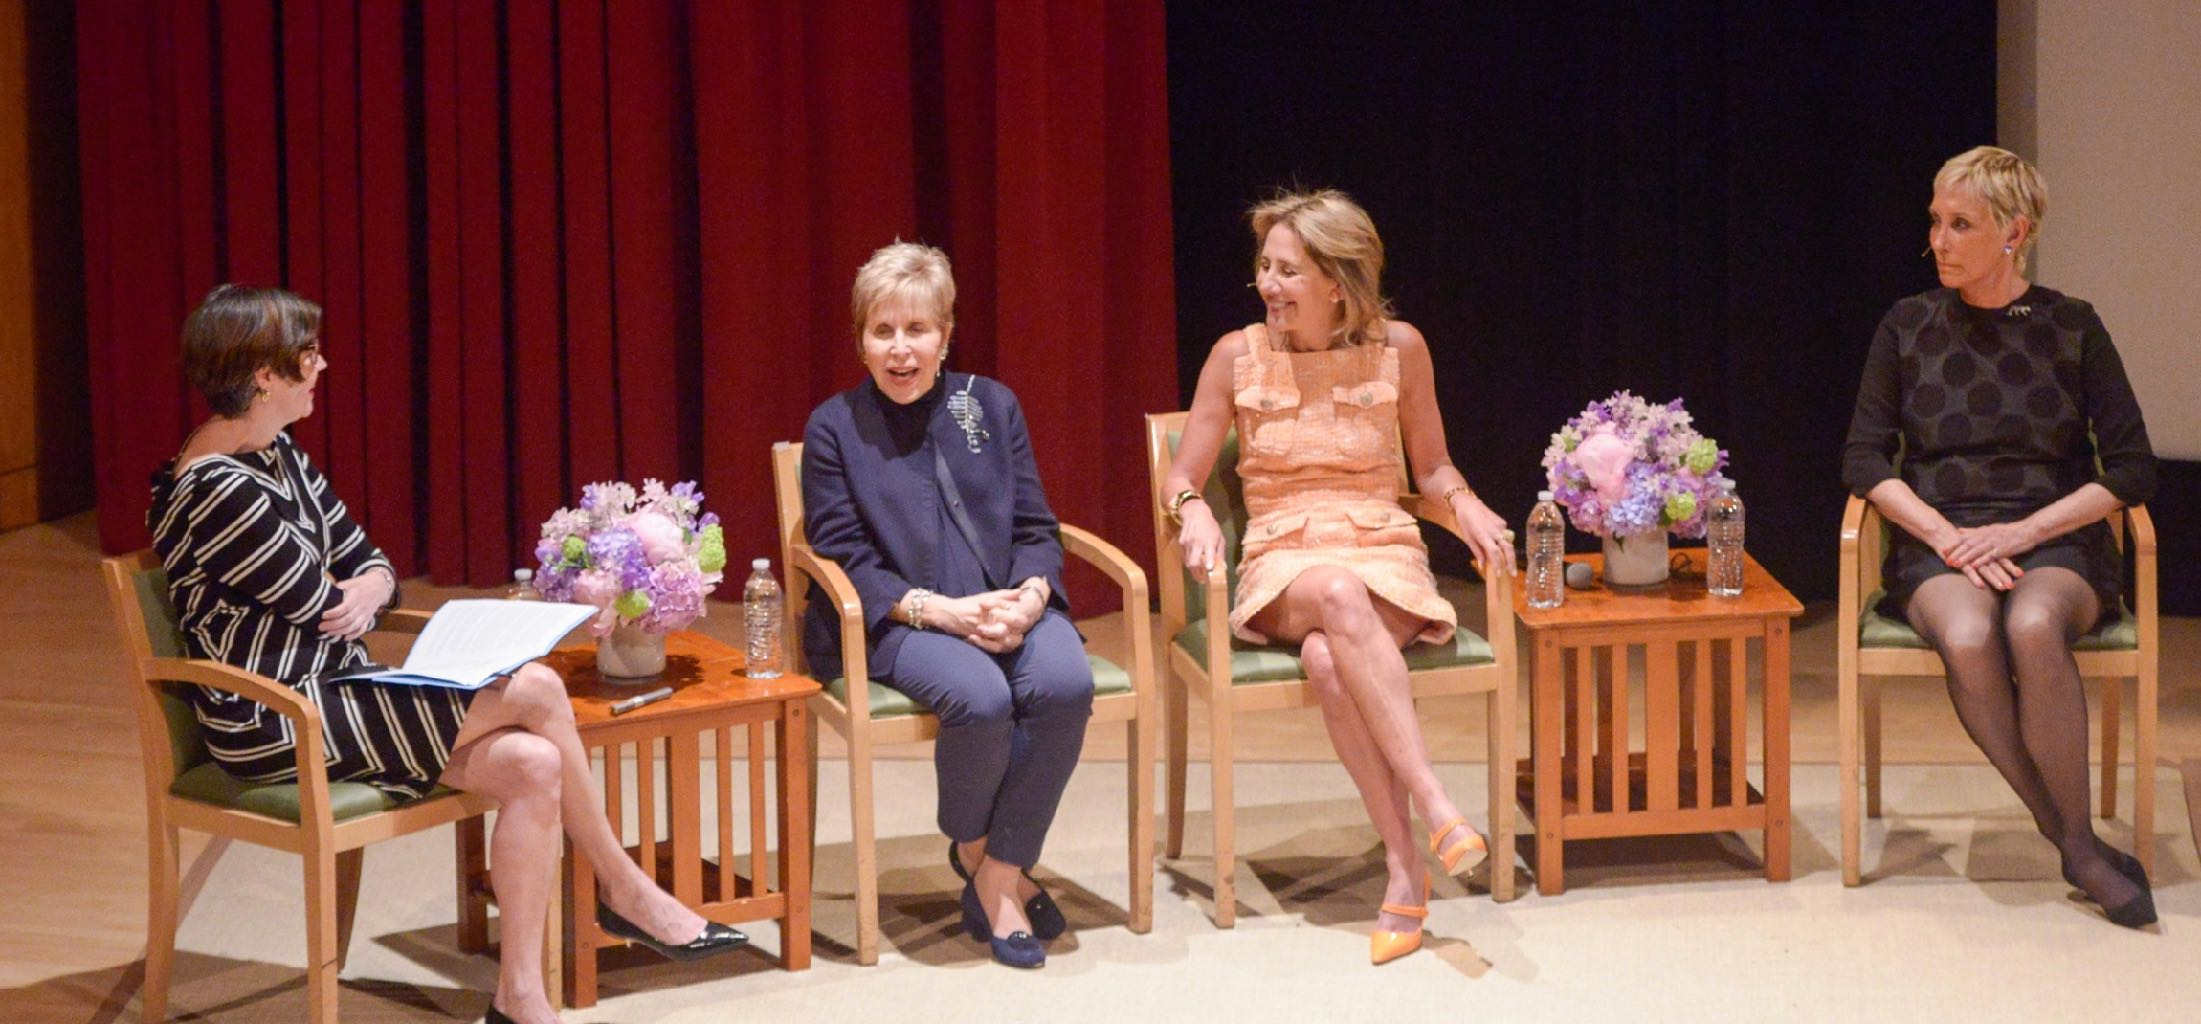 """Women and the Critical Eye: The Art of Jewelry,"" a conversation at the Metropolitan Museum of Art included curator Melanie Holcomb, collectors Laurie Ann Goldman, Milly Glimcher and jewelry professional Lisa Hubbard. Photo © The Metropolitan Museum of Art, New York"